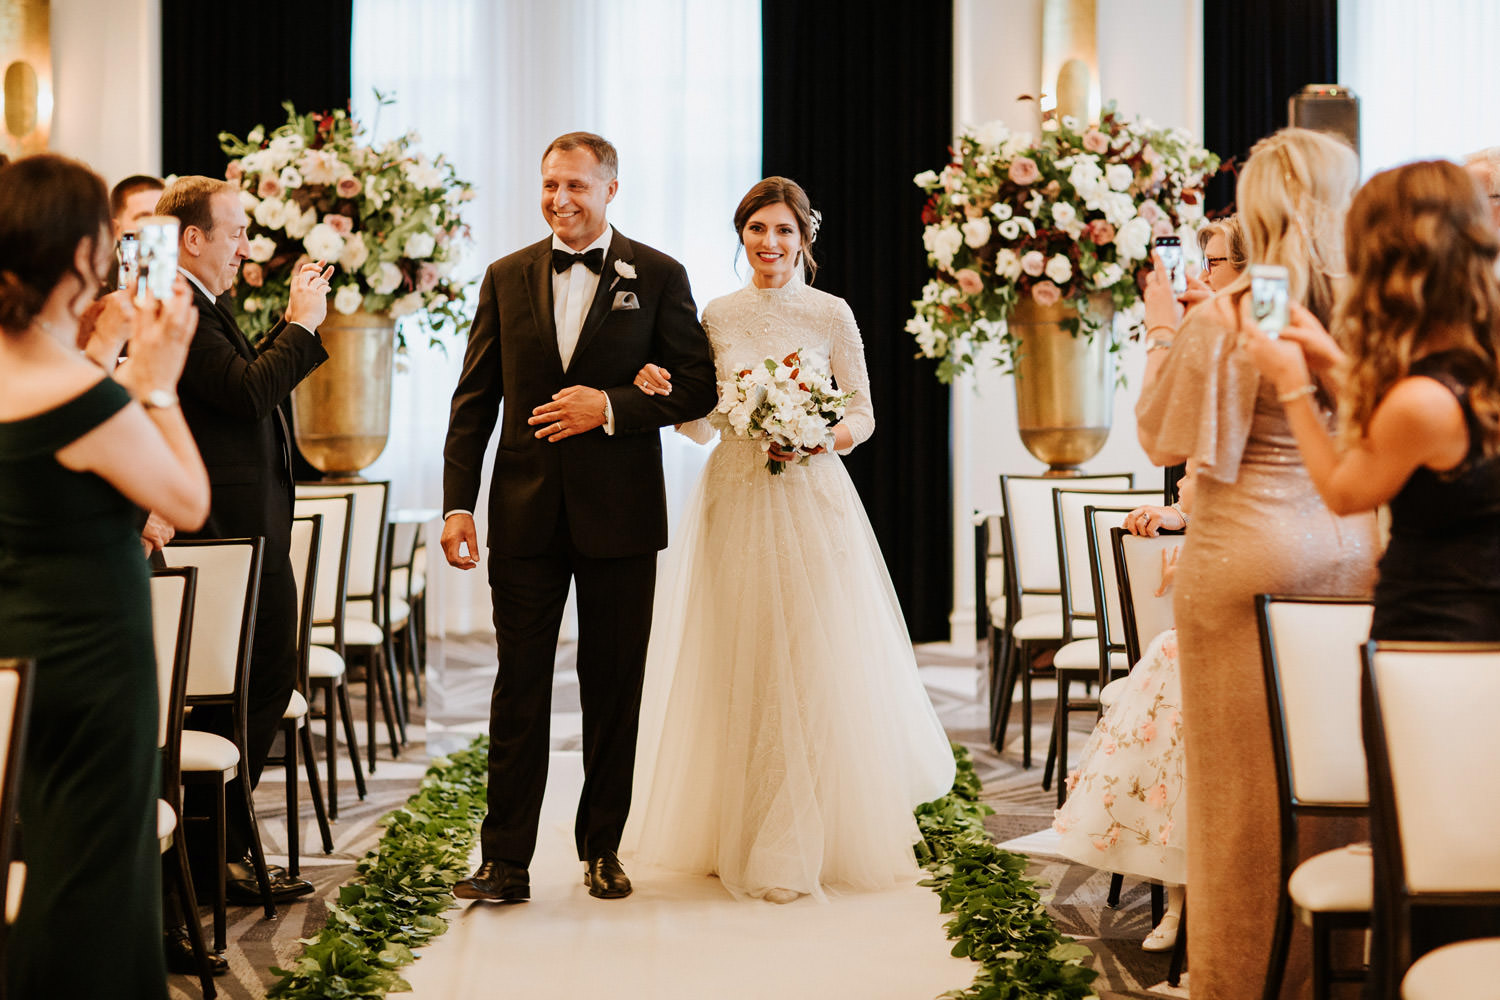 Bride walking down the isle with her father during the wedding dauy at Gray Hotel in Chicago